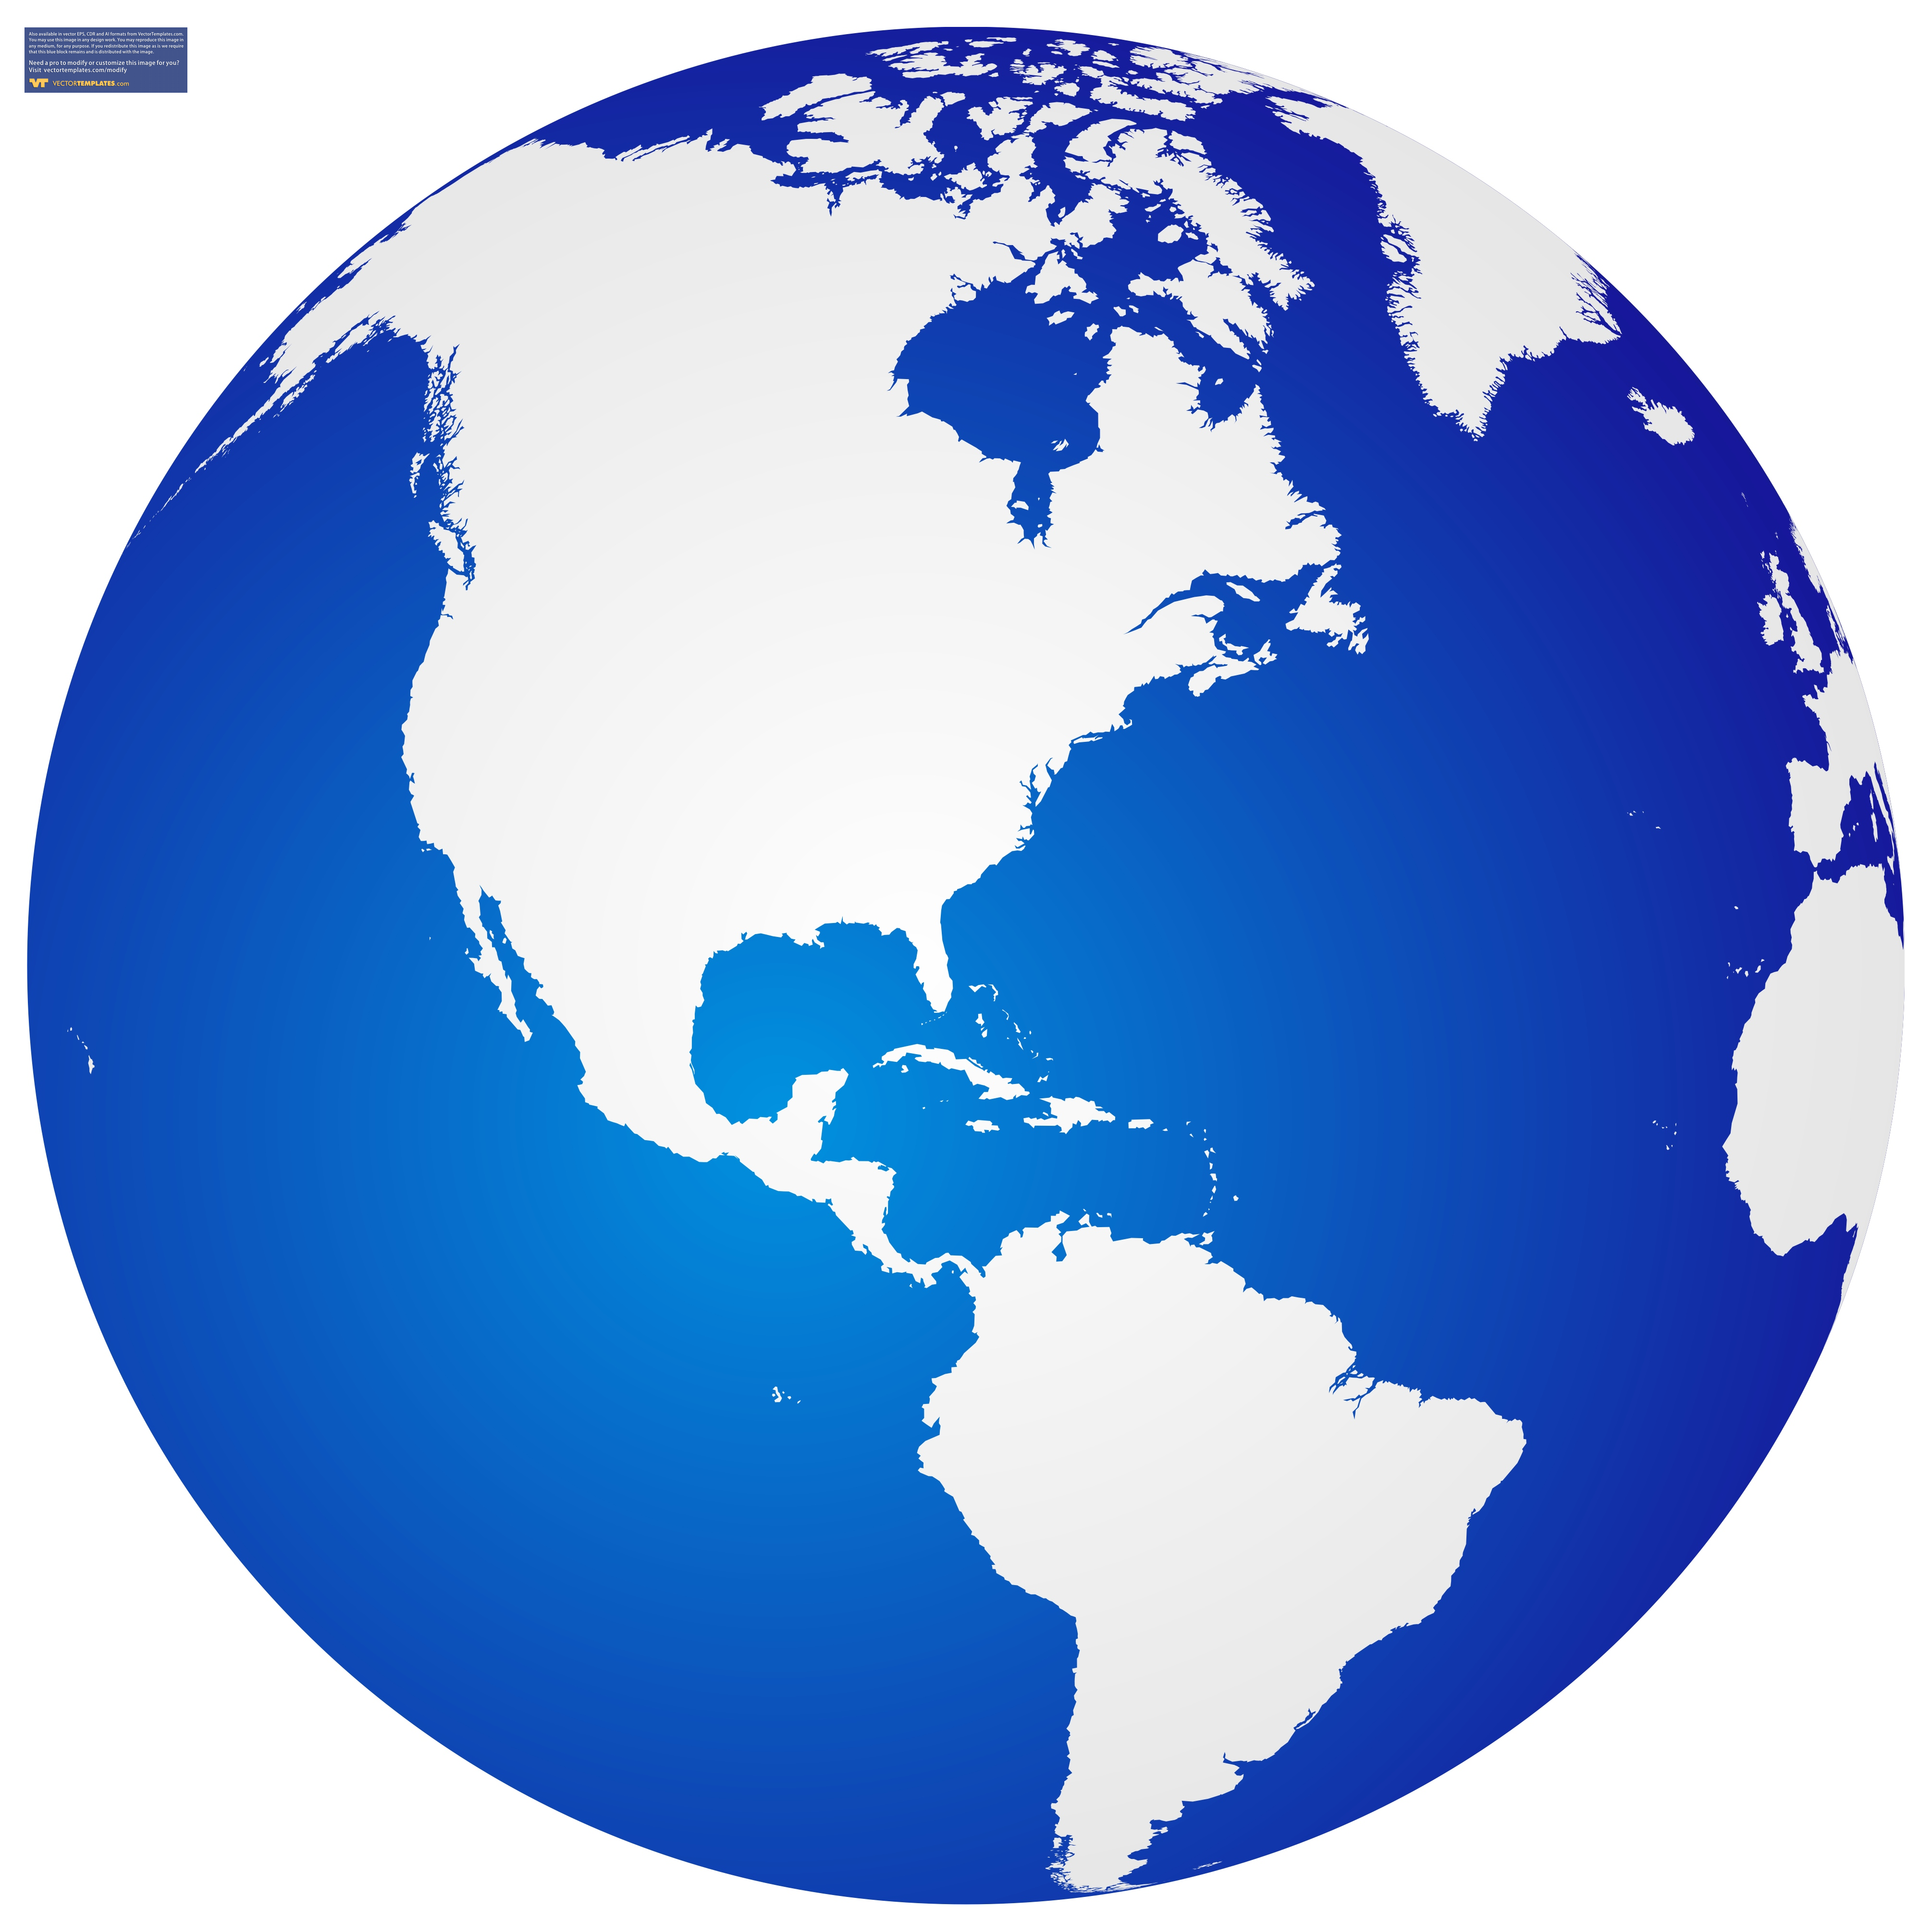 18 Free Globe Vector Images